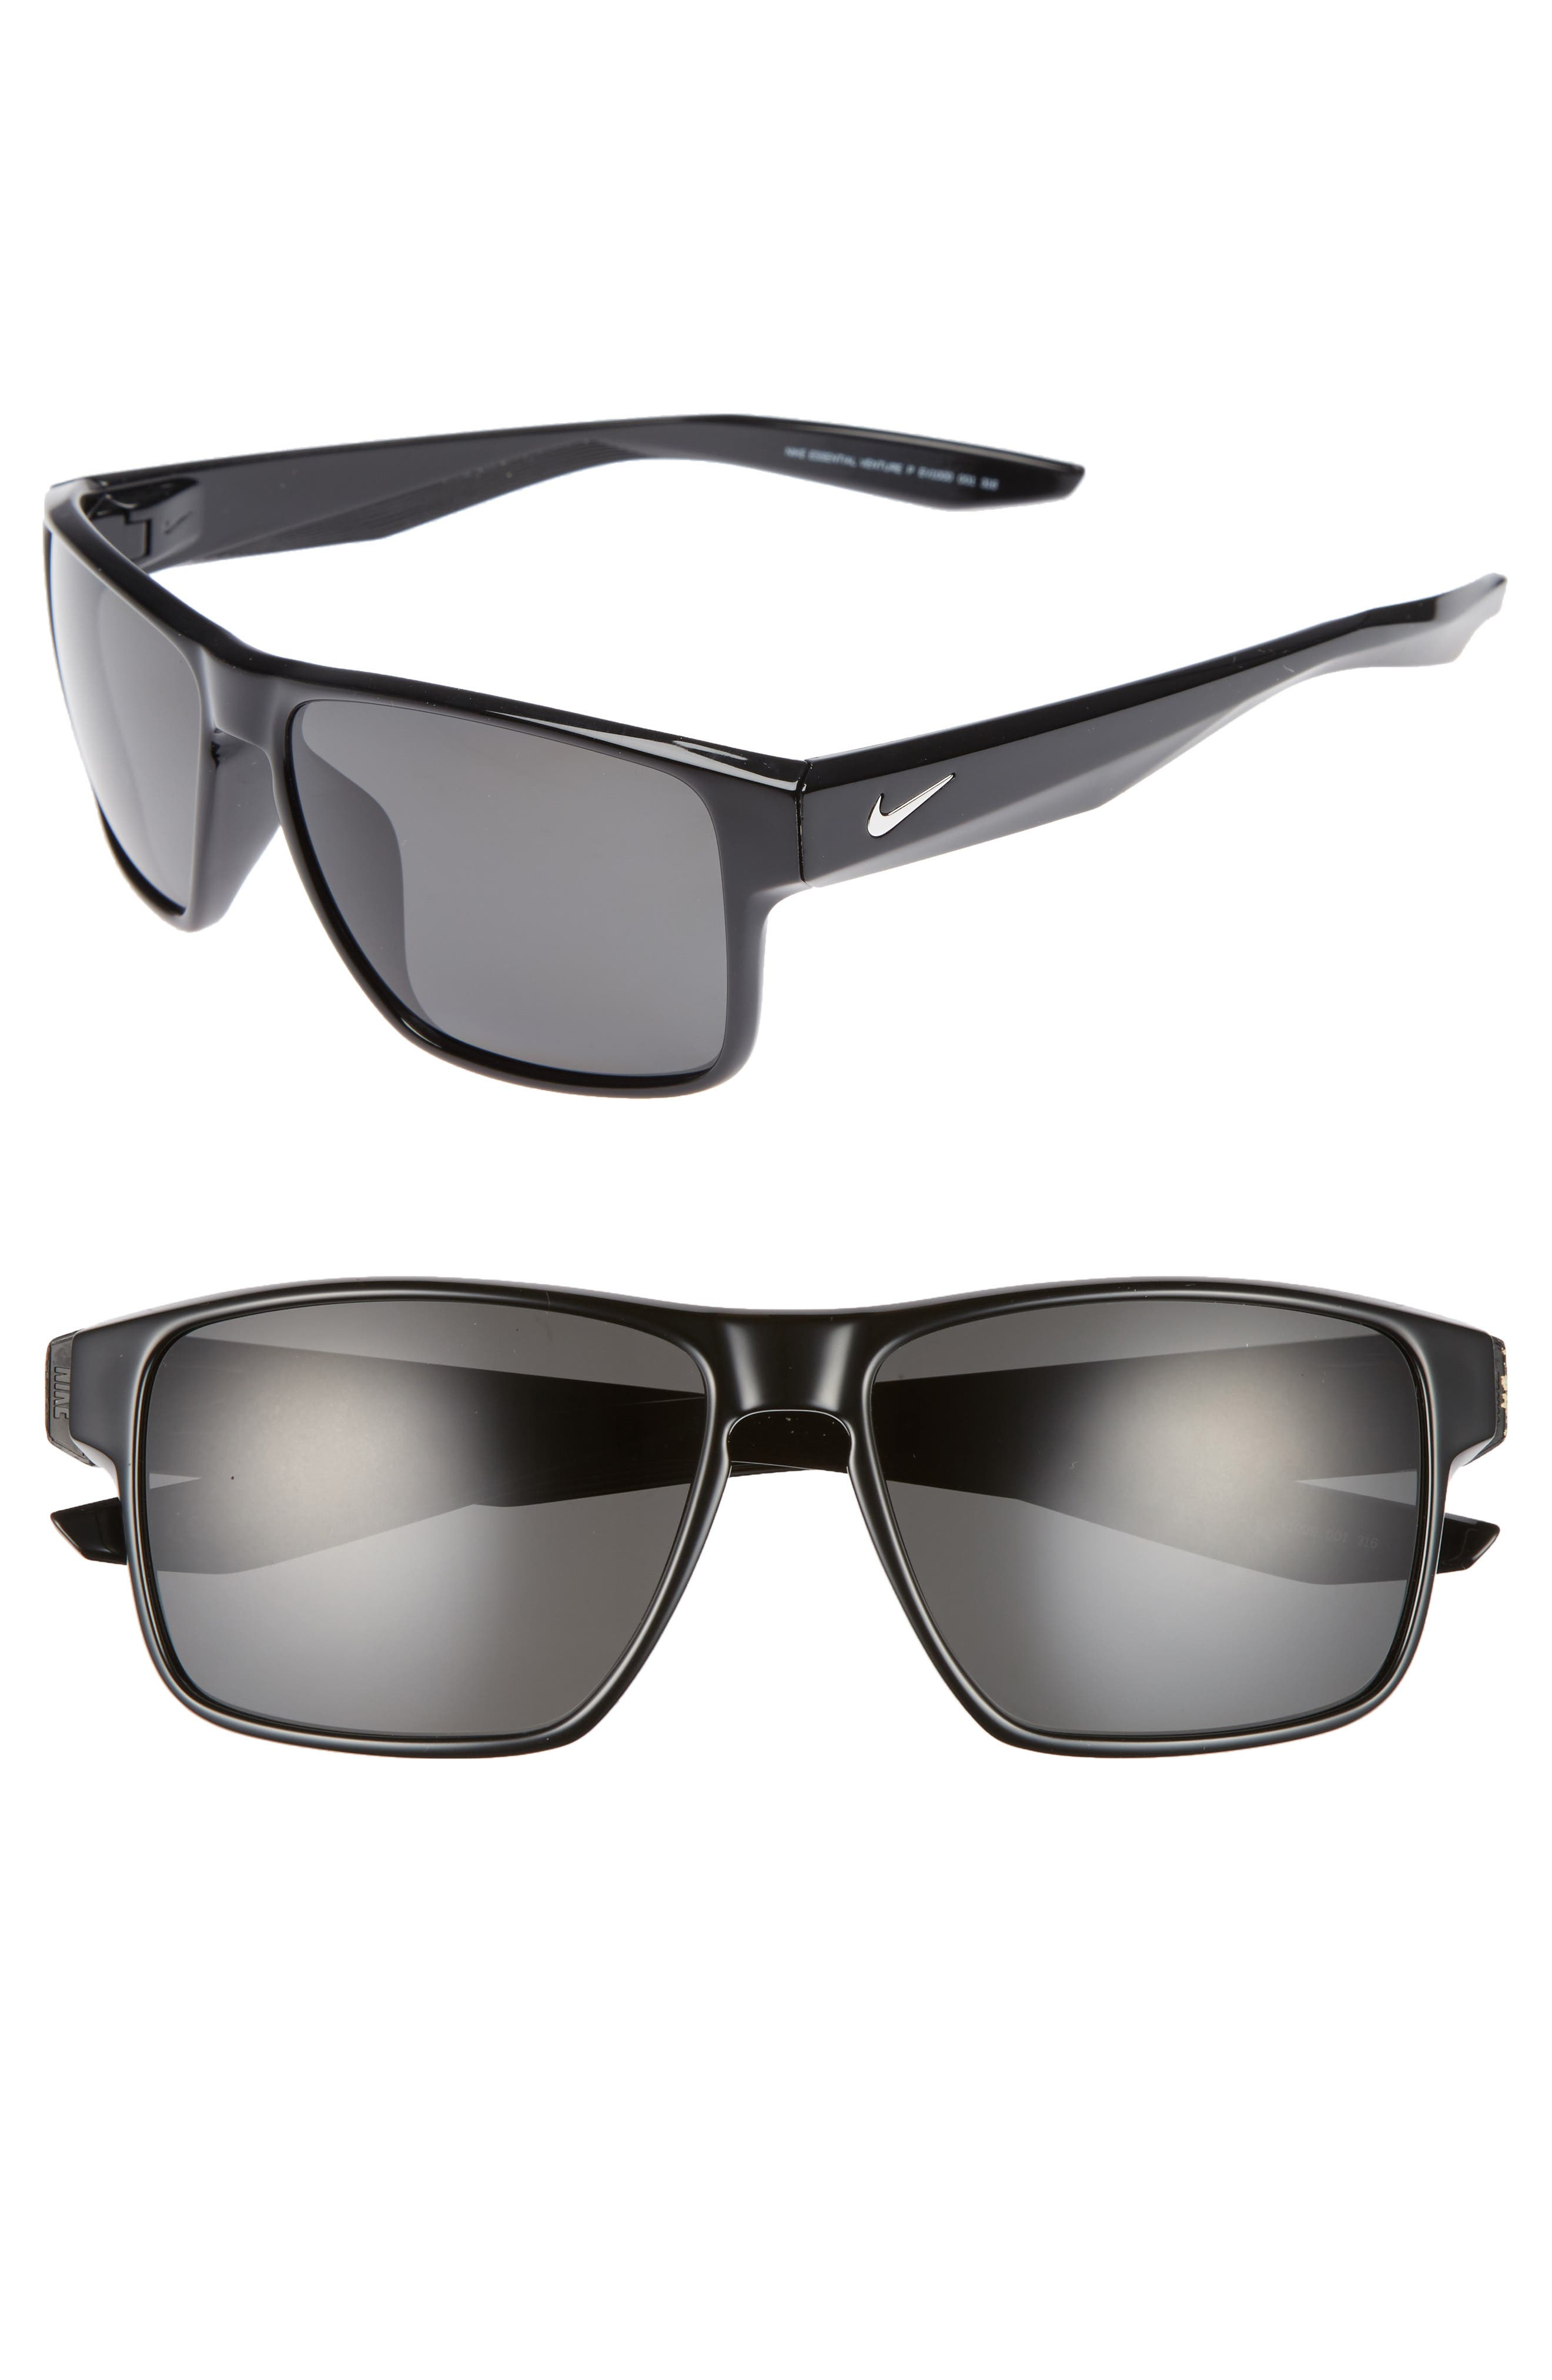 NIKE, Essential Venture 59mm Polarized Sport Sunglasses, Main thumbnail 1, color, MATTE BLACK